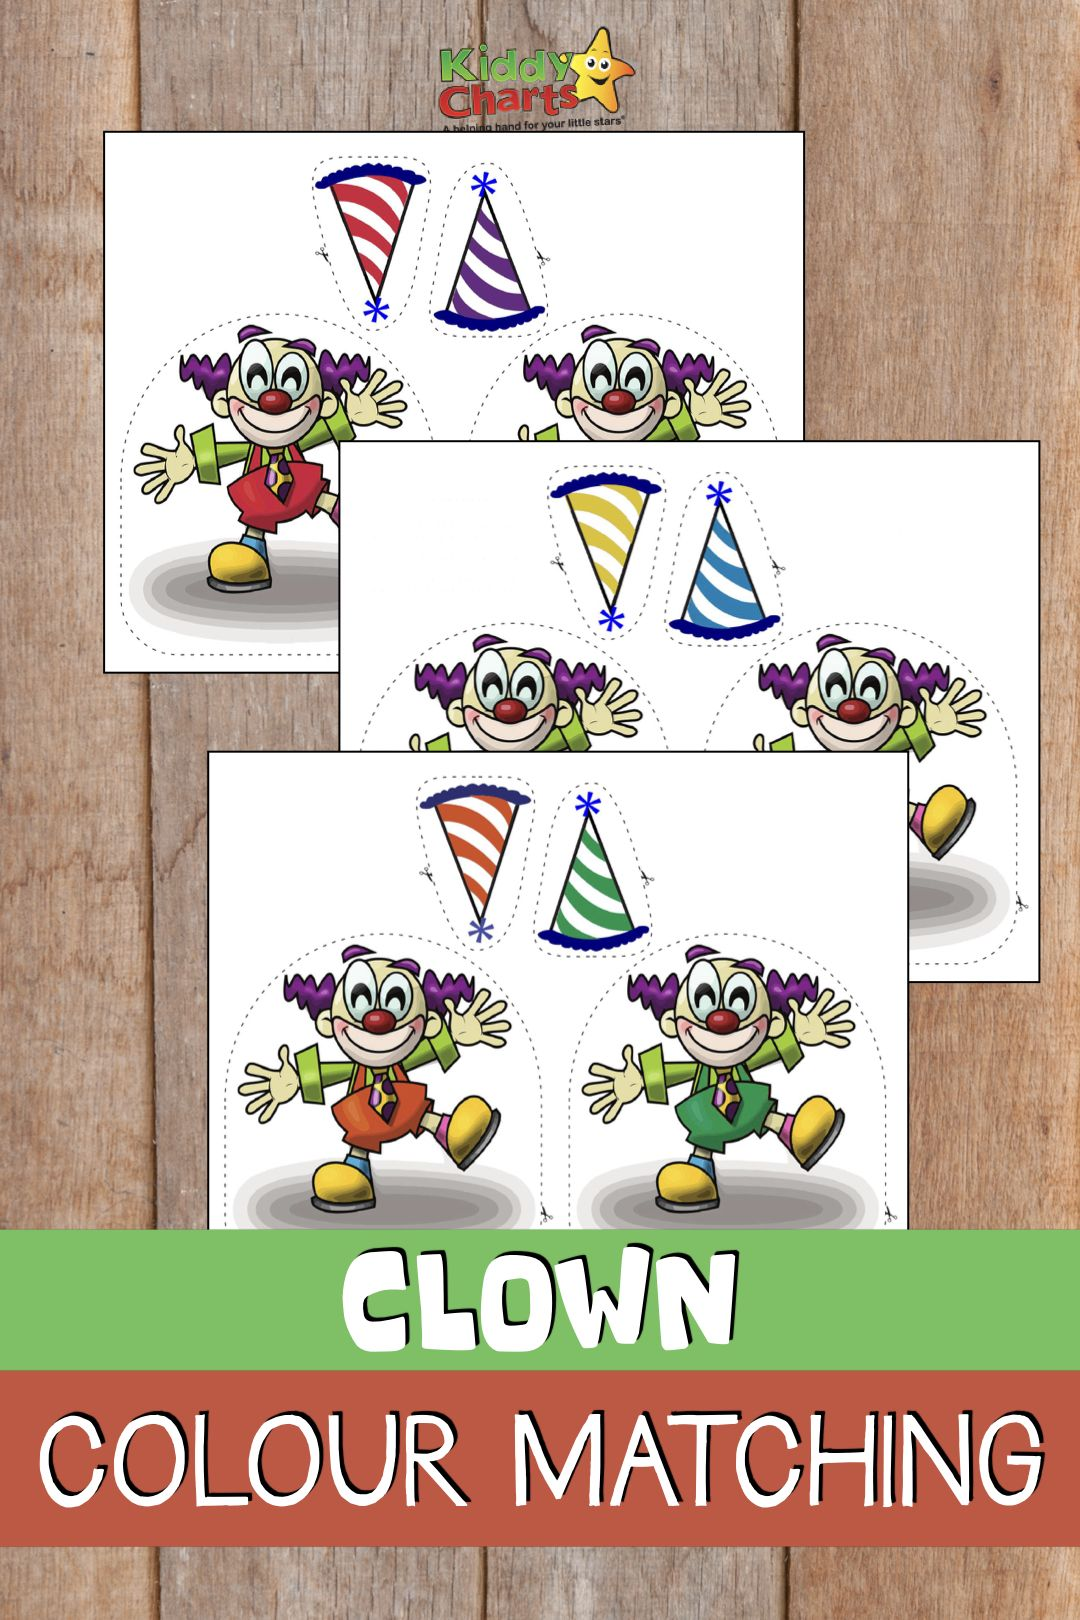 Learning Colours Clown Colour Matching Game